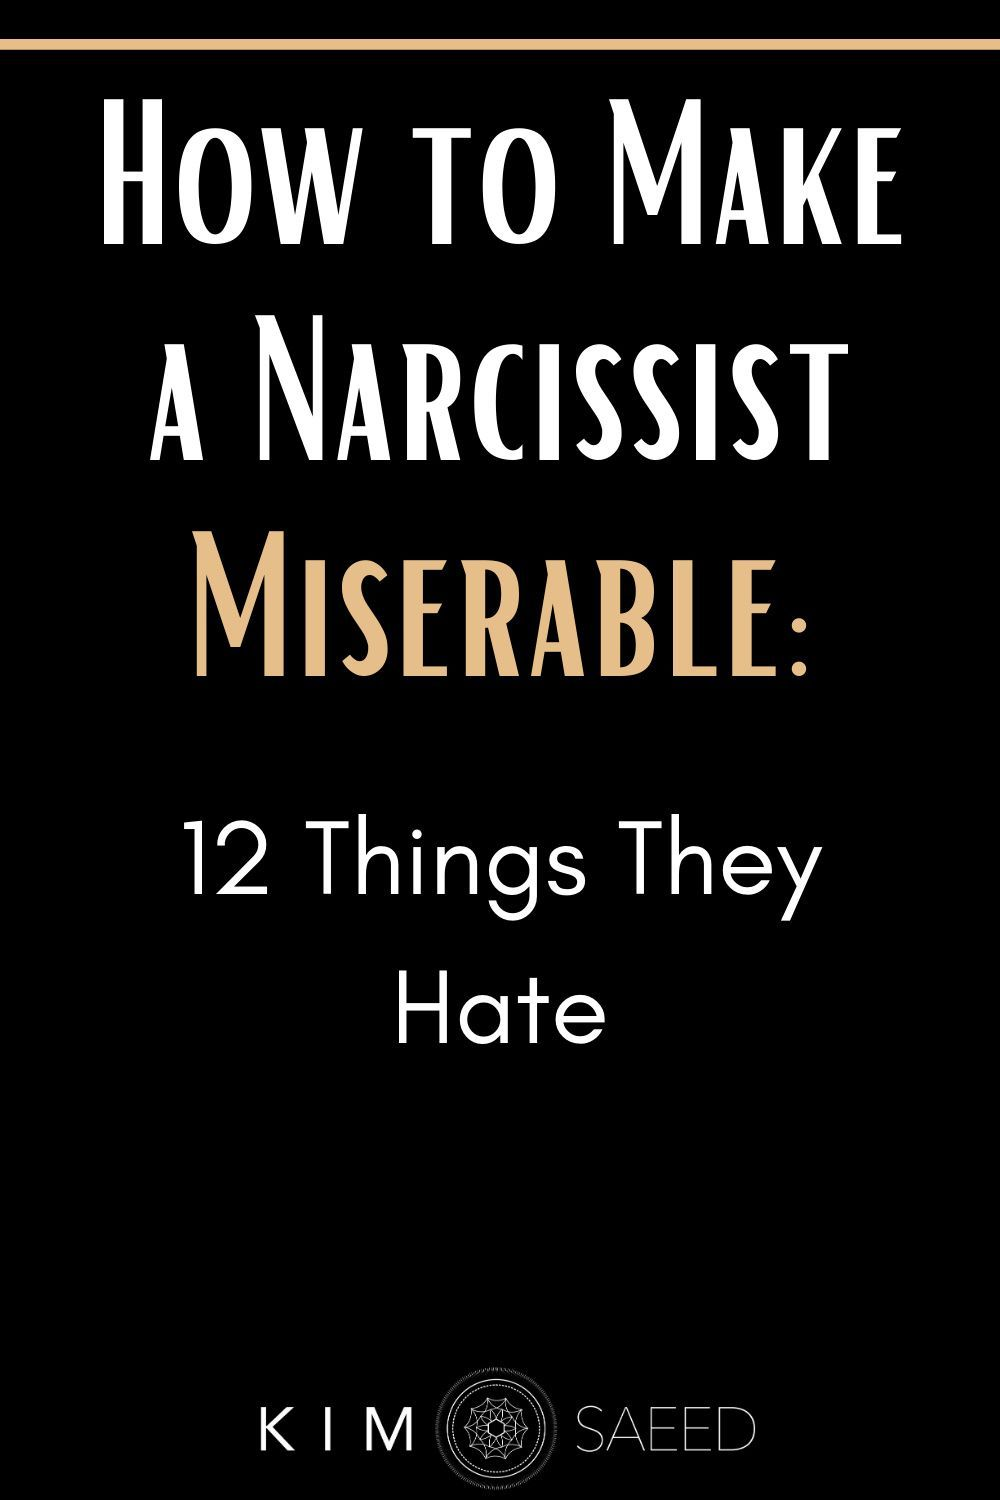 How to Make a Narcissist Miserable: 12 Things They